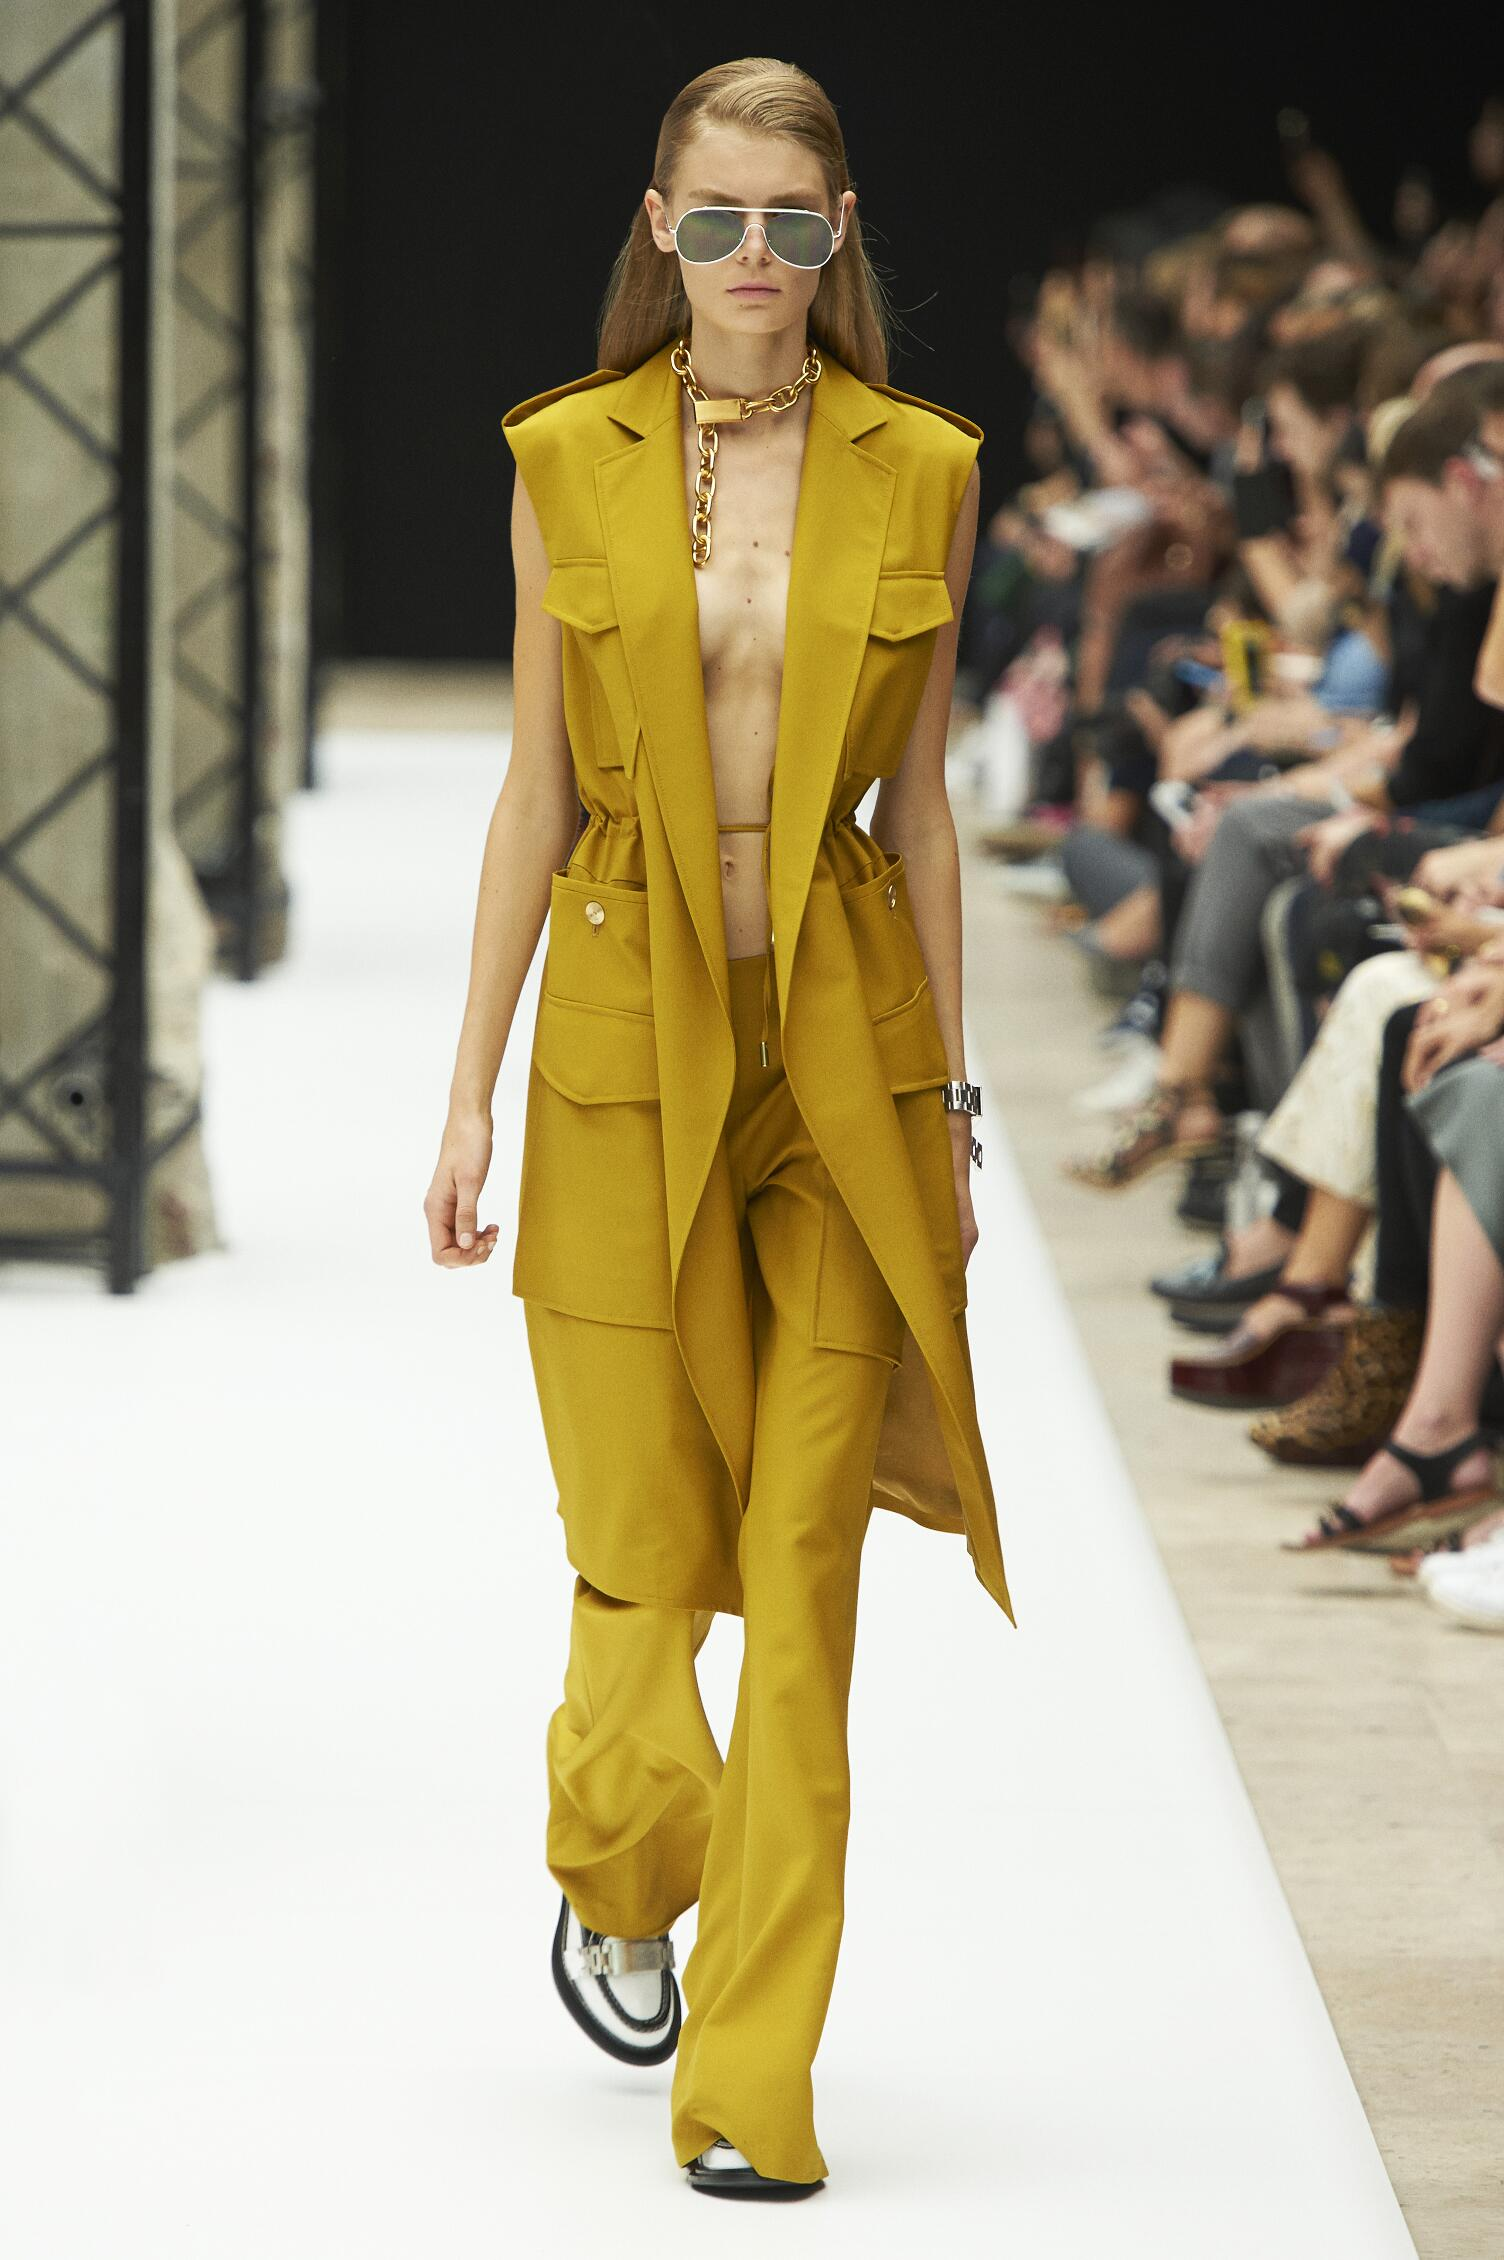 Spring Summer 2015 Fashion Model Acne Studios